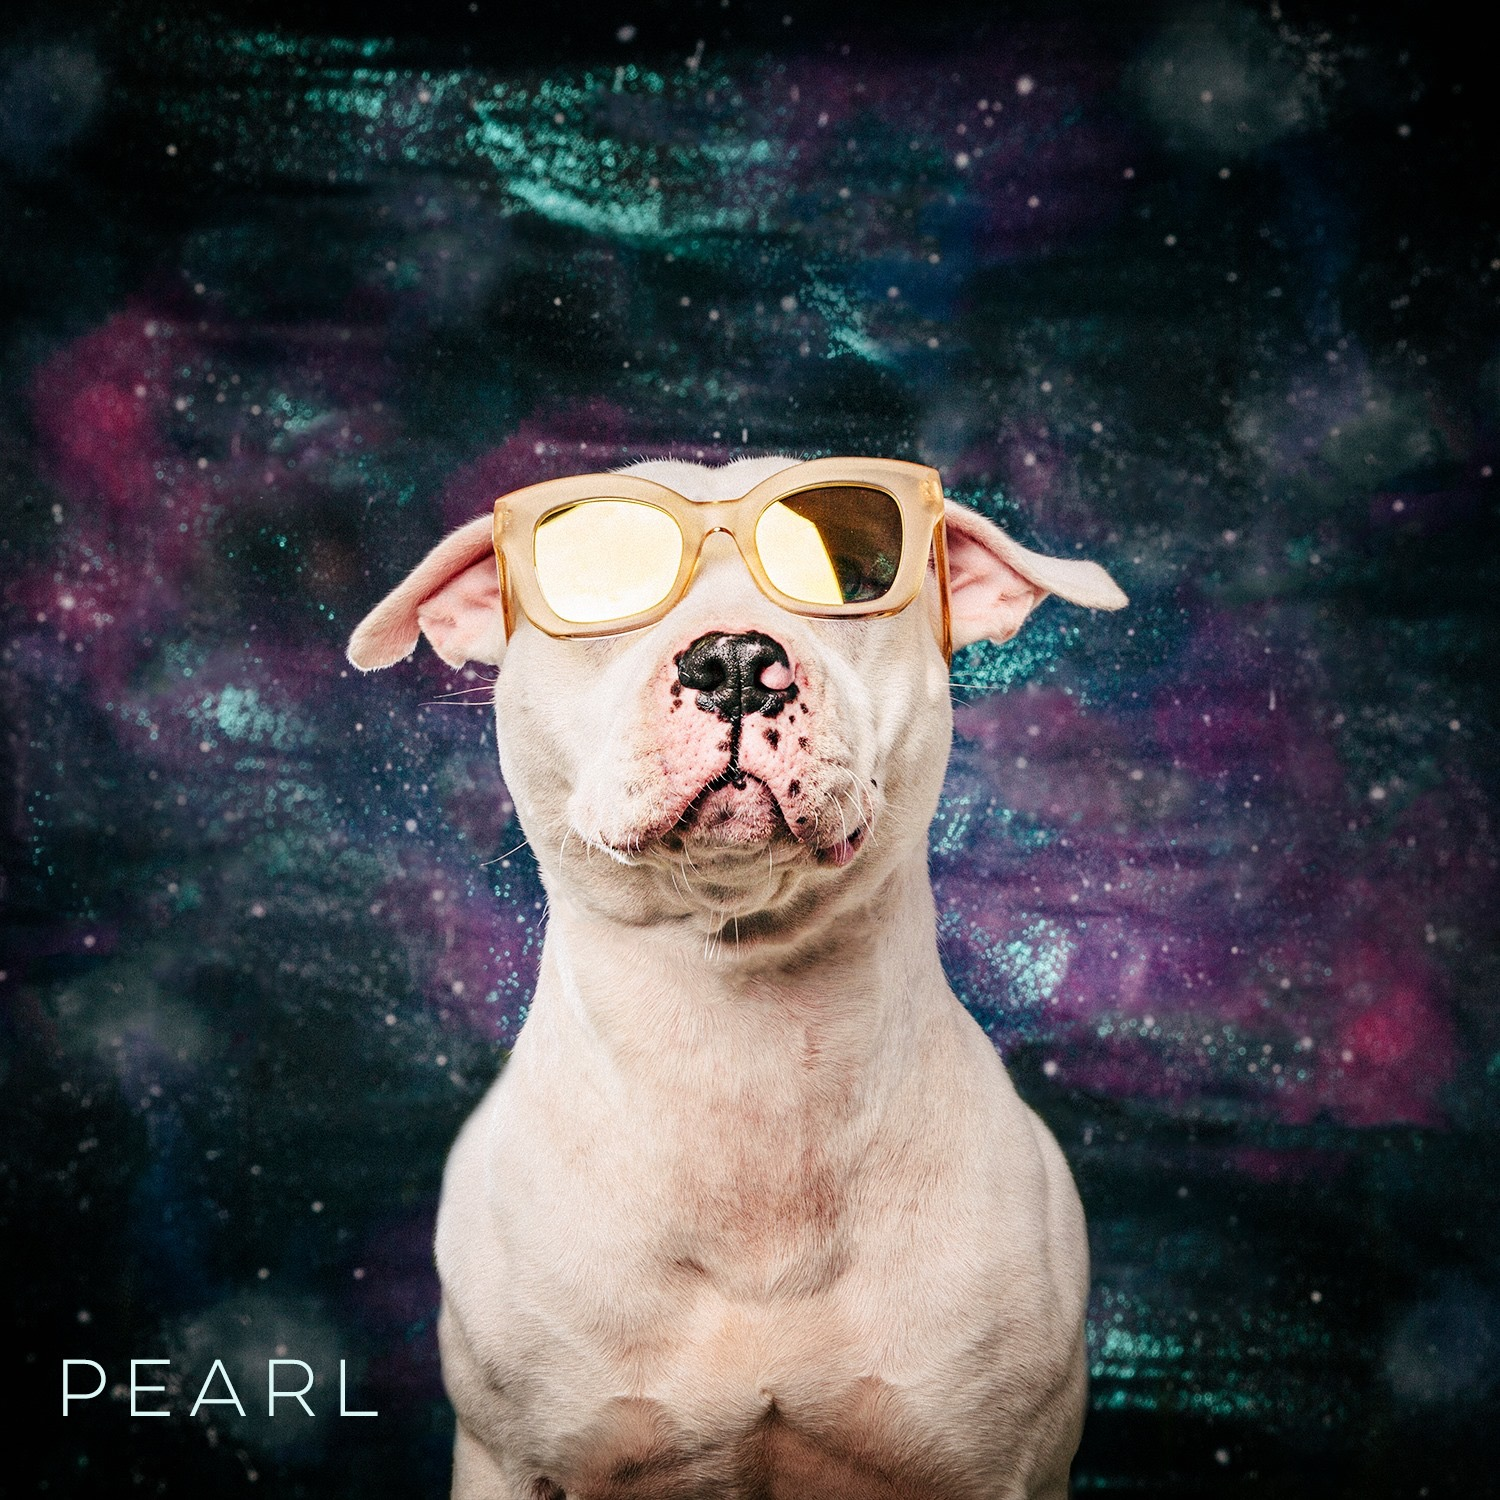 Pearl wearing KREWE sunglasses with yellow mirror lenses